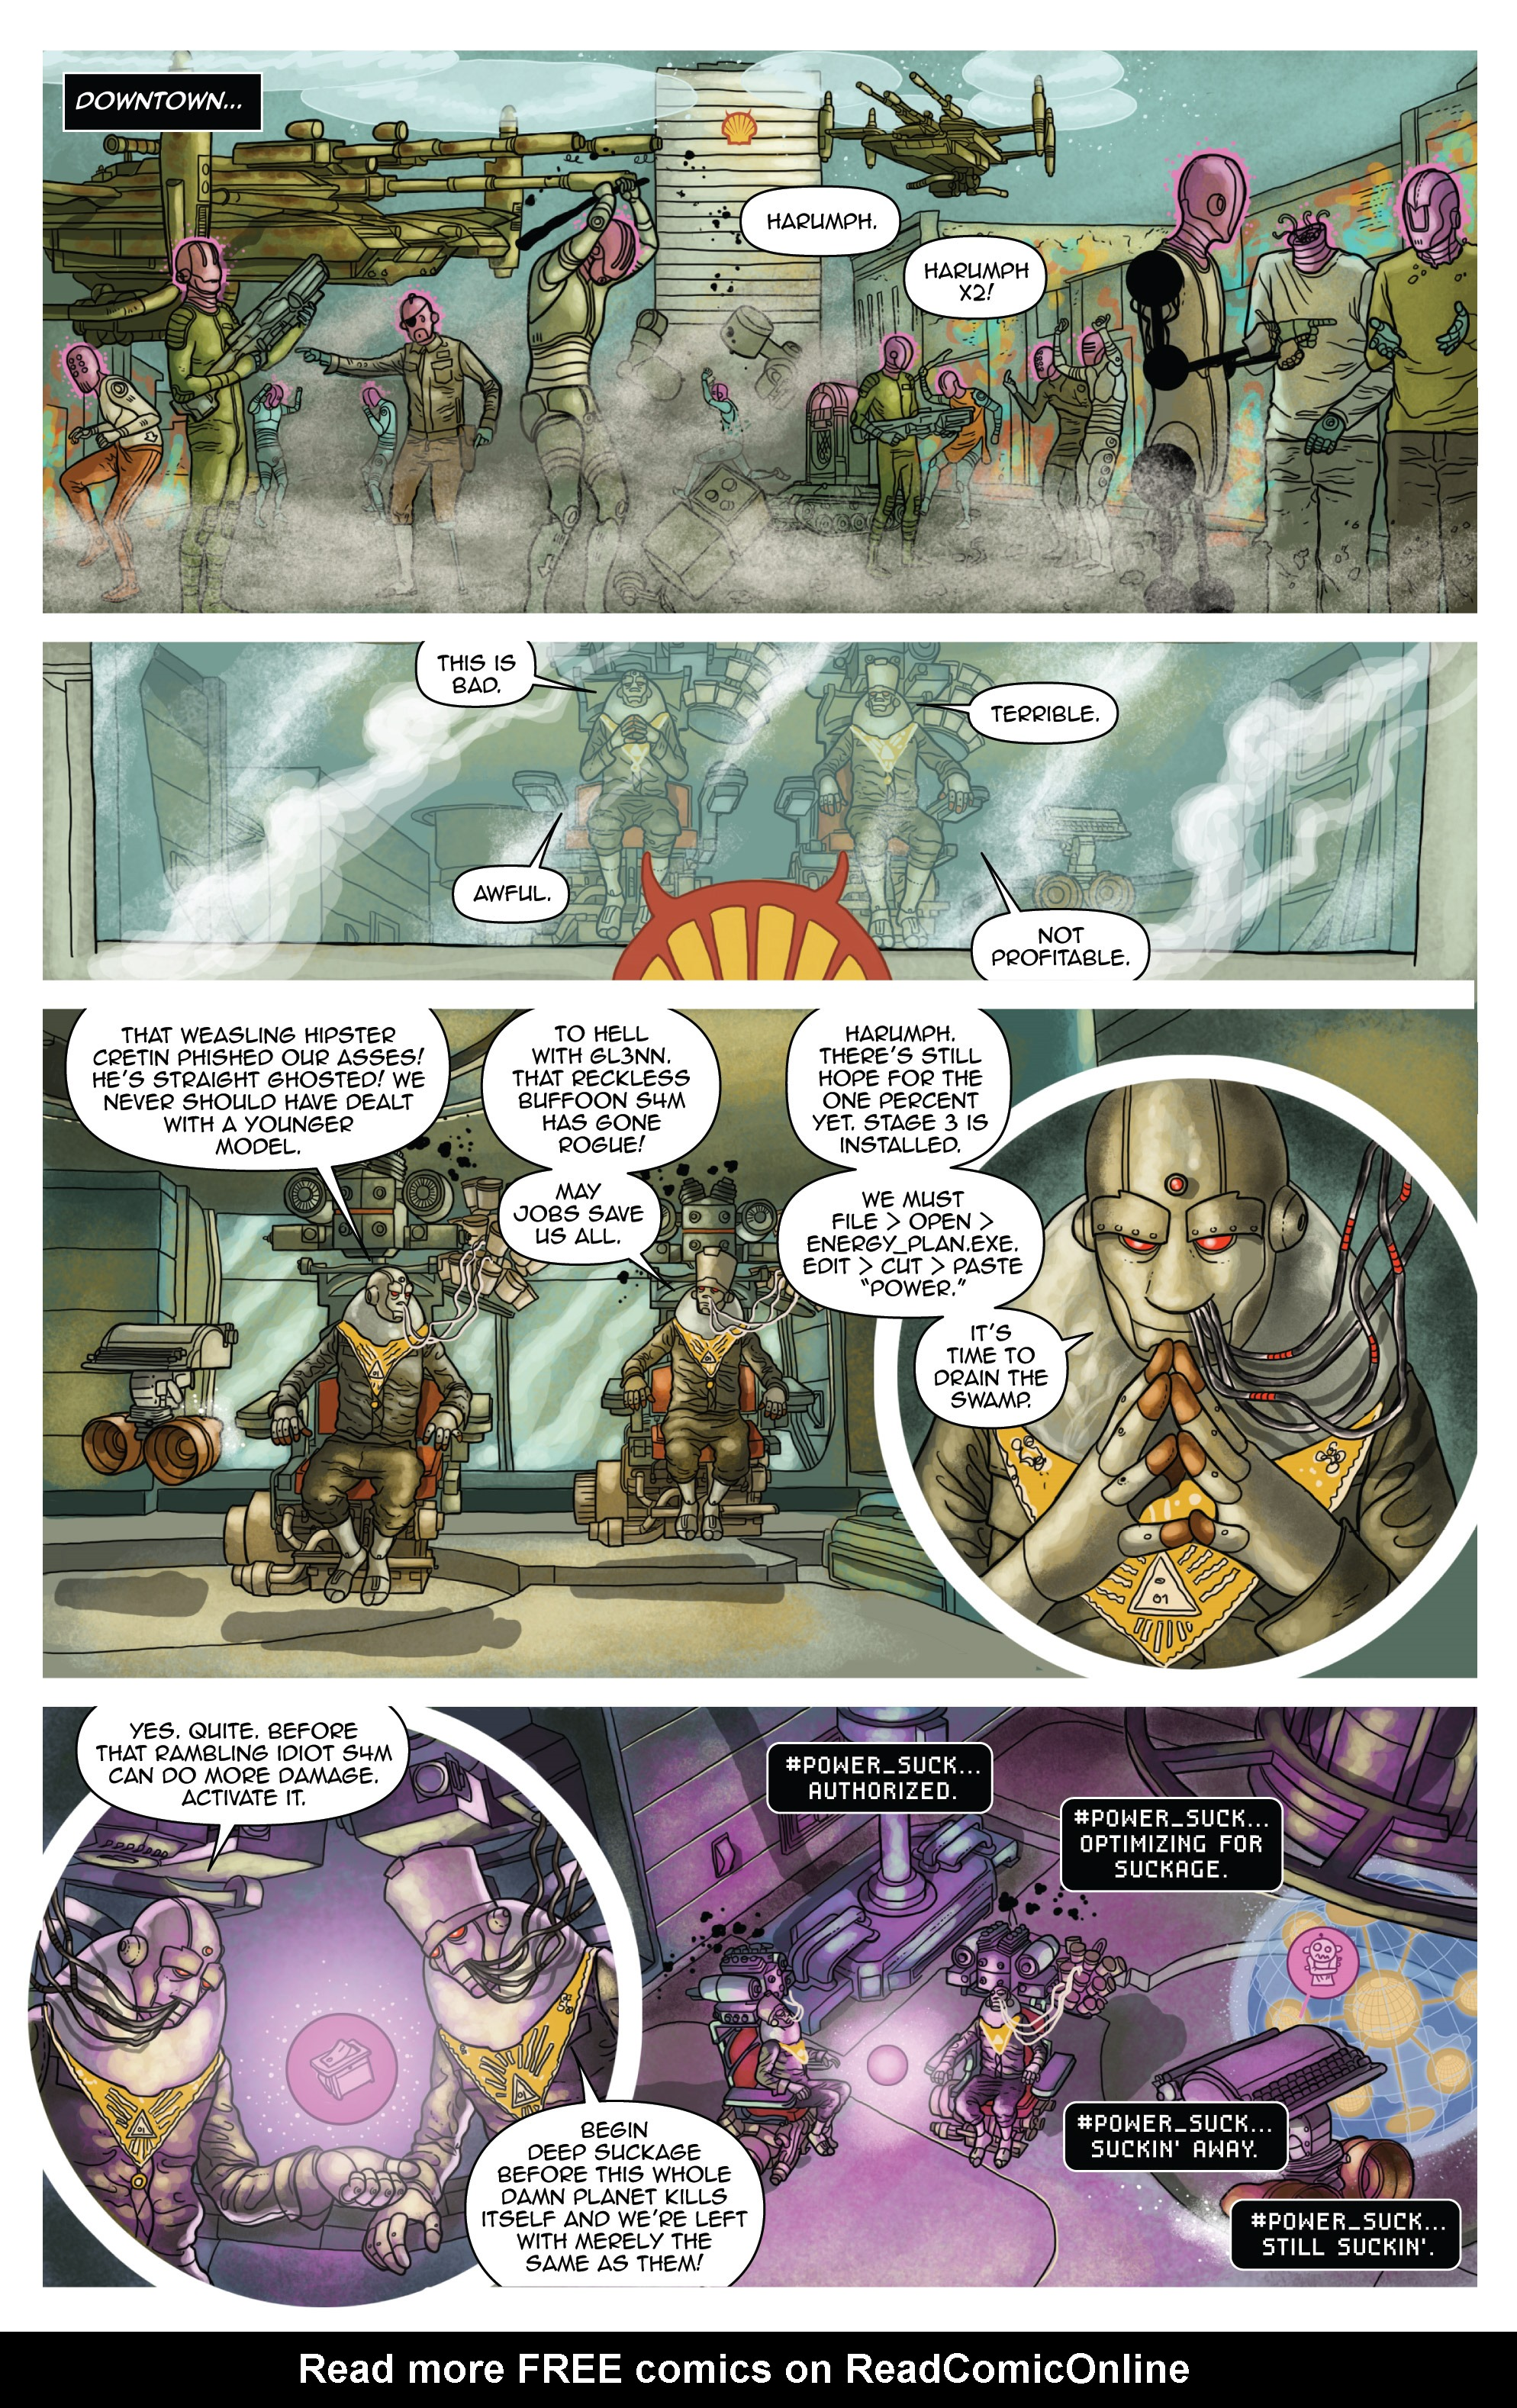 Read online D4VEocracy comic -  Issue #4 - 7